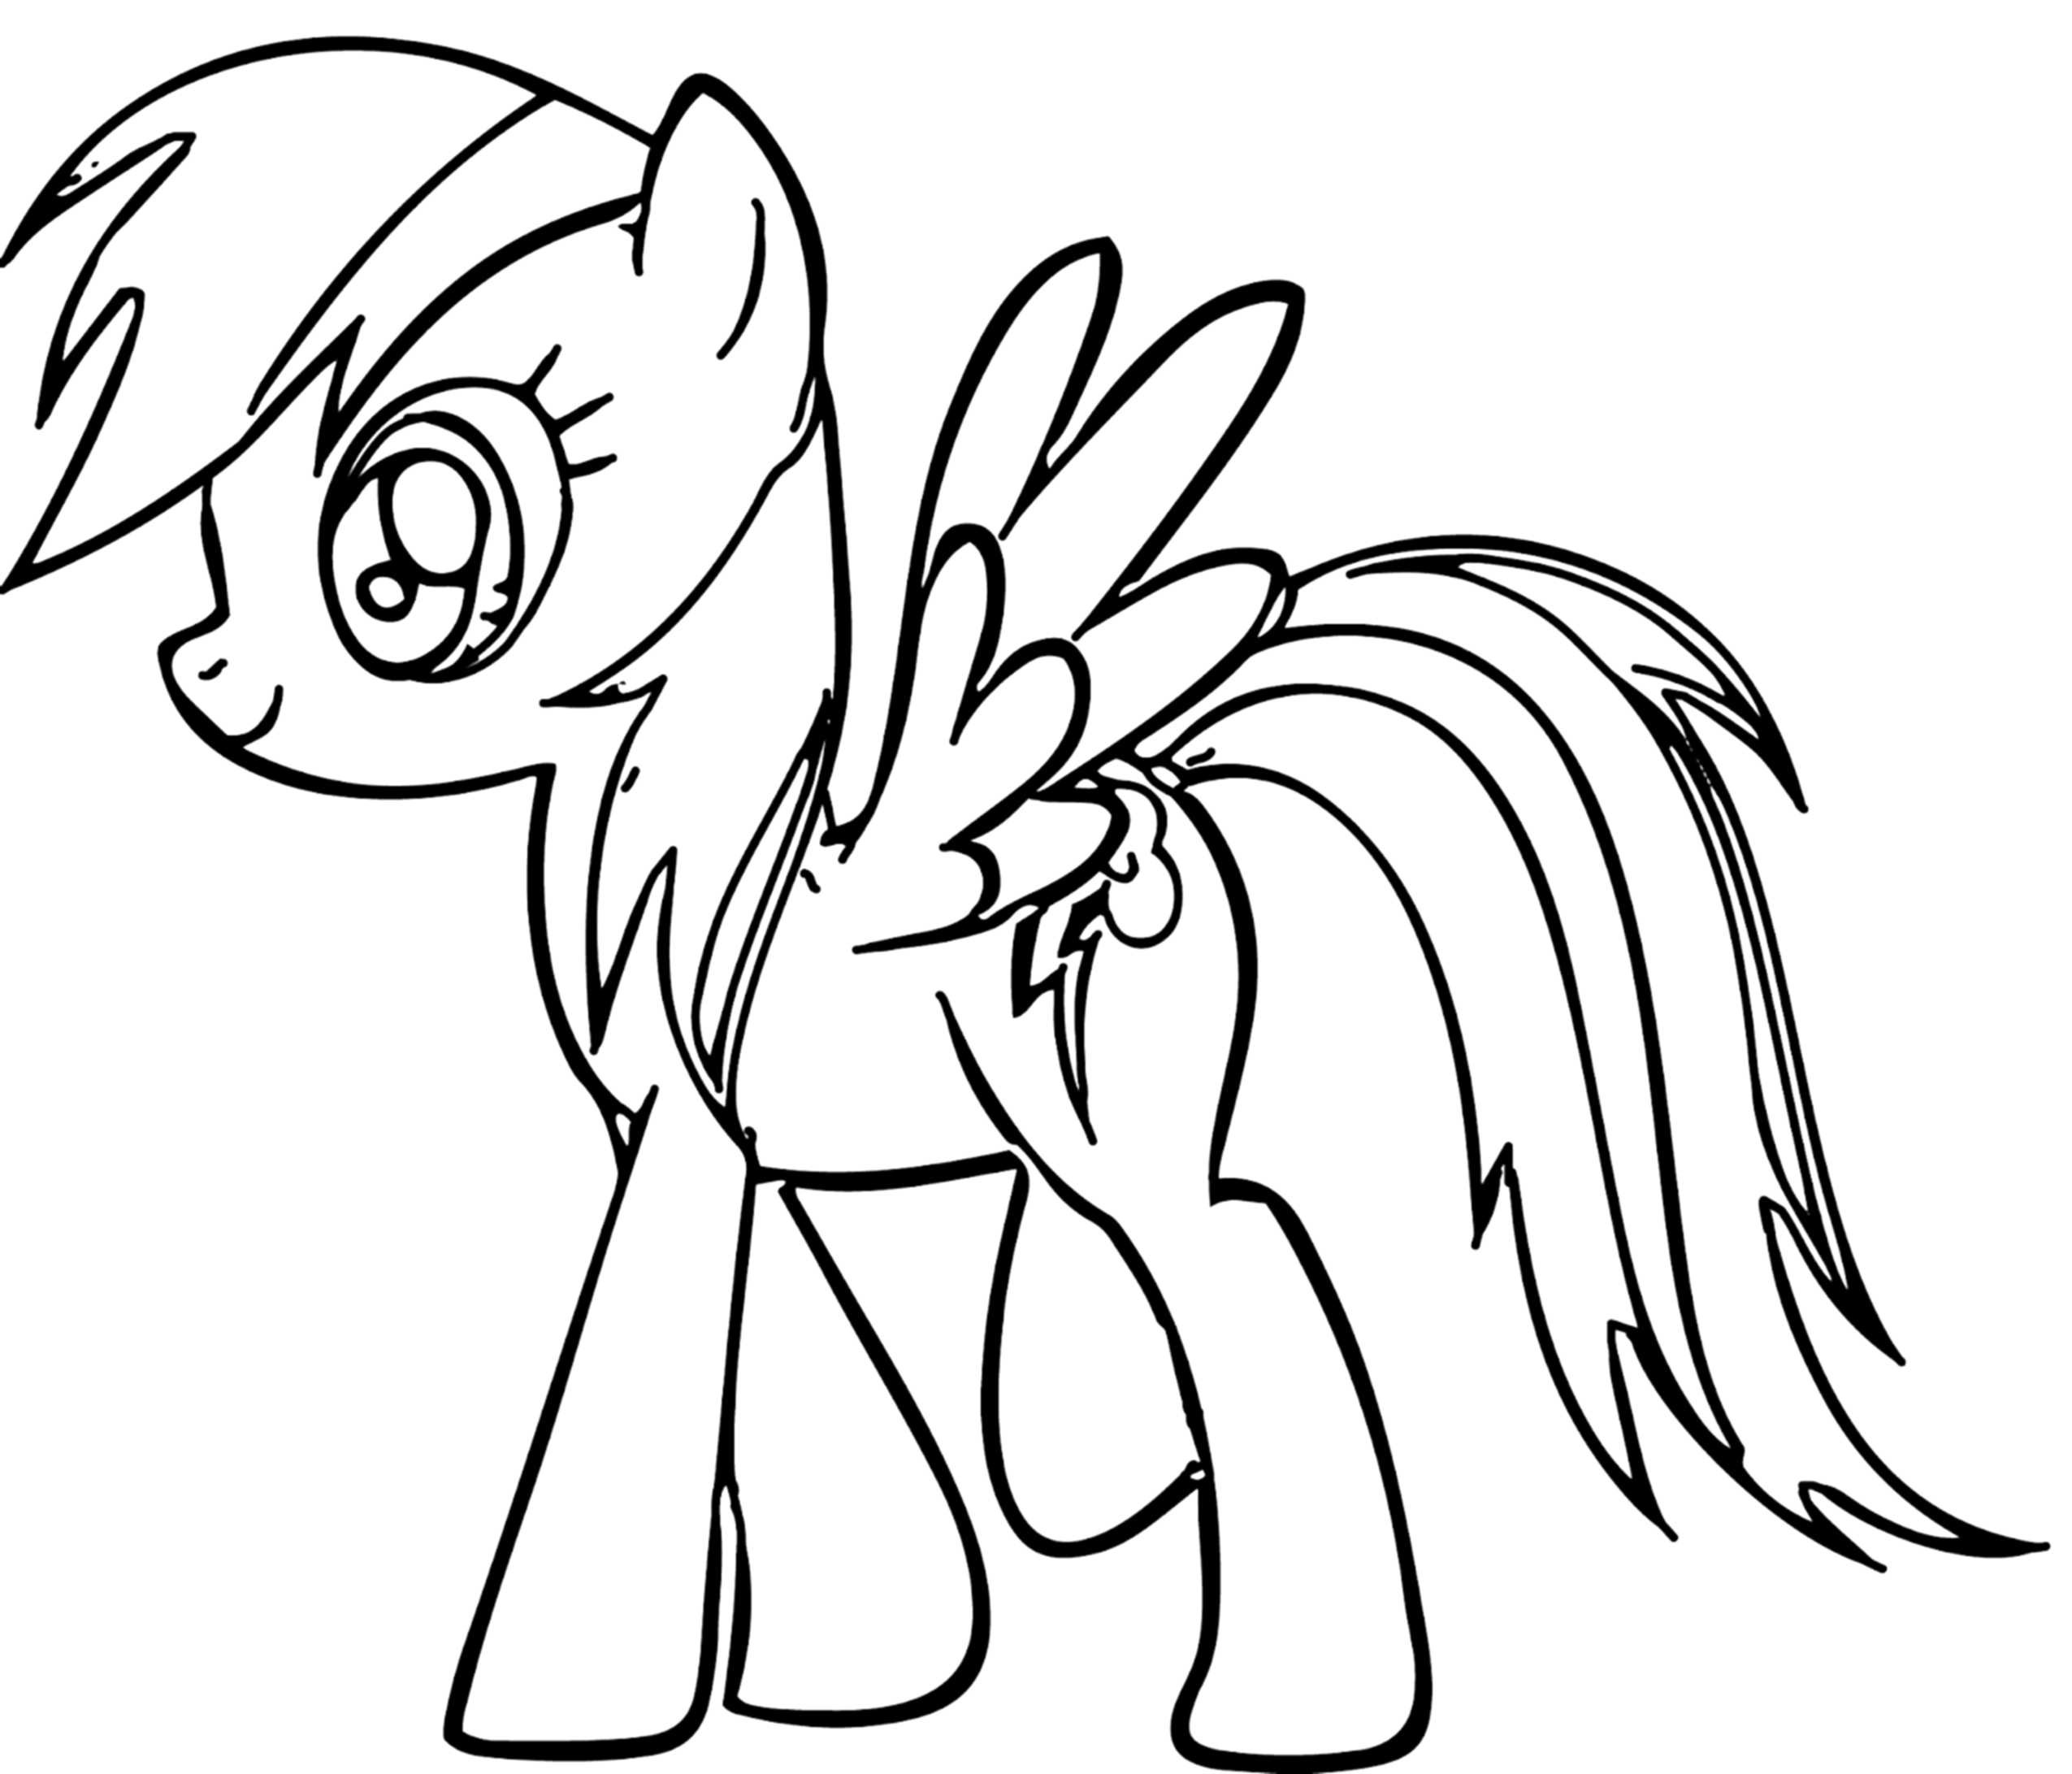 Coloring Book For Kids  Rainbow Dash Coloring Pages Best Coloring Pages For Kids